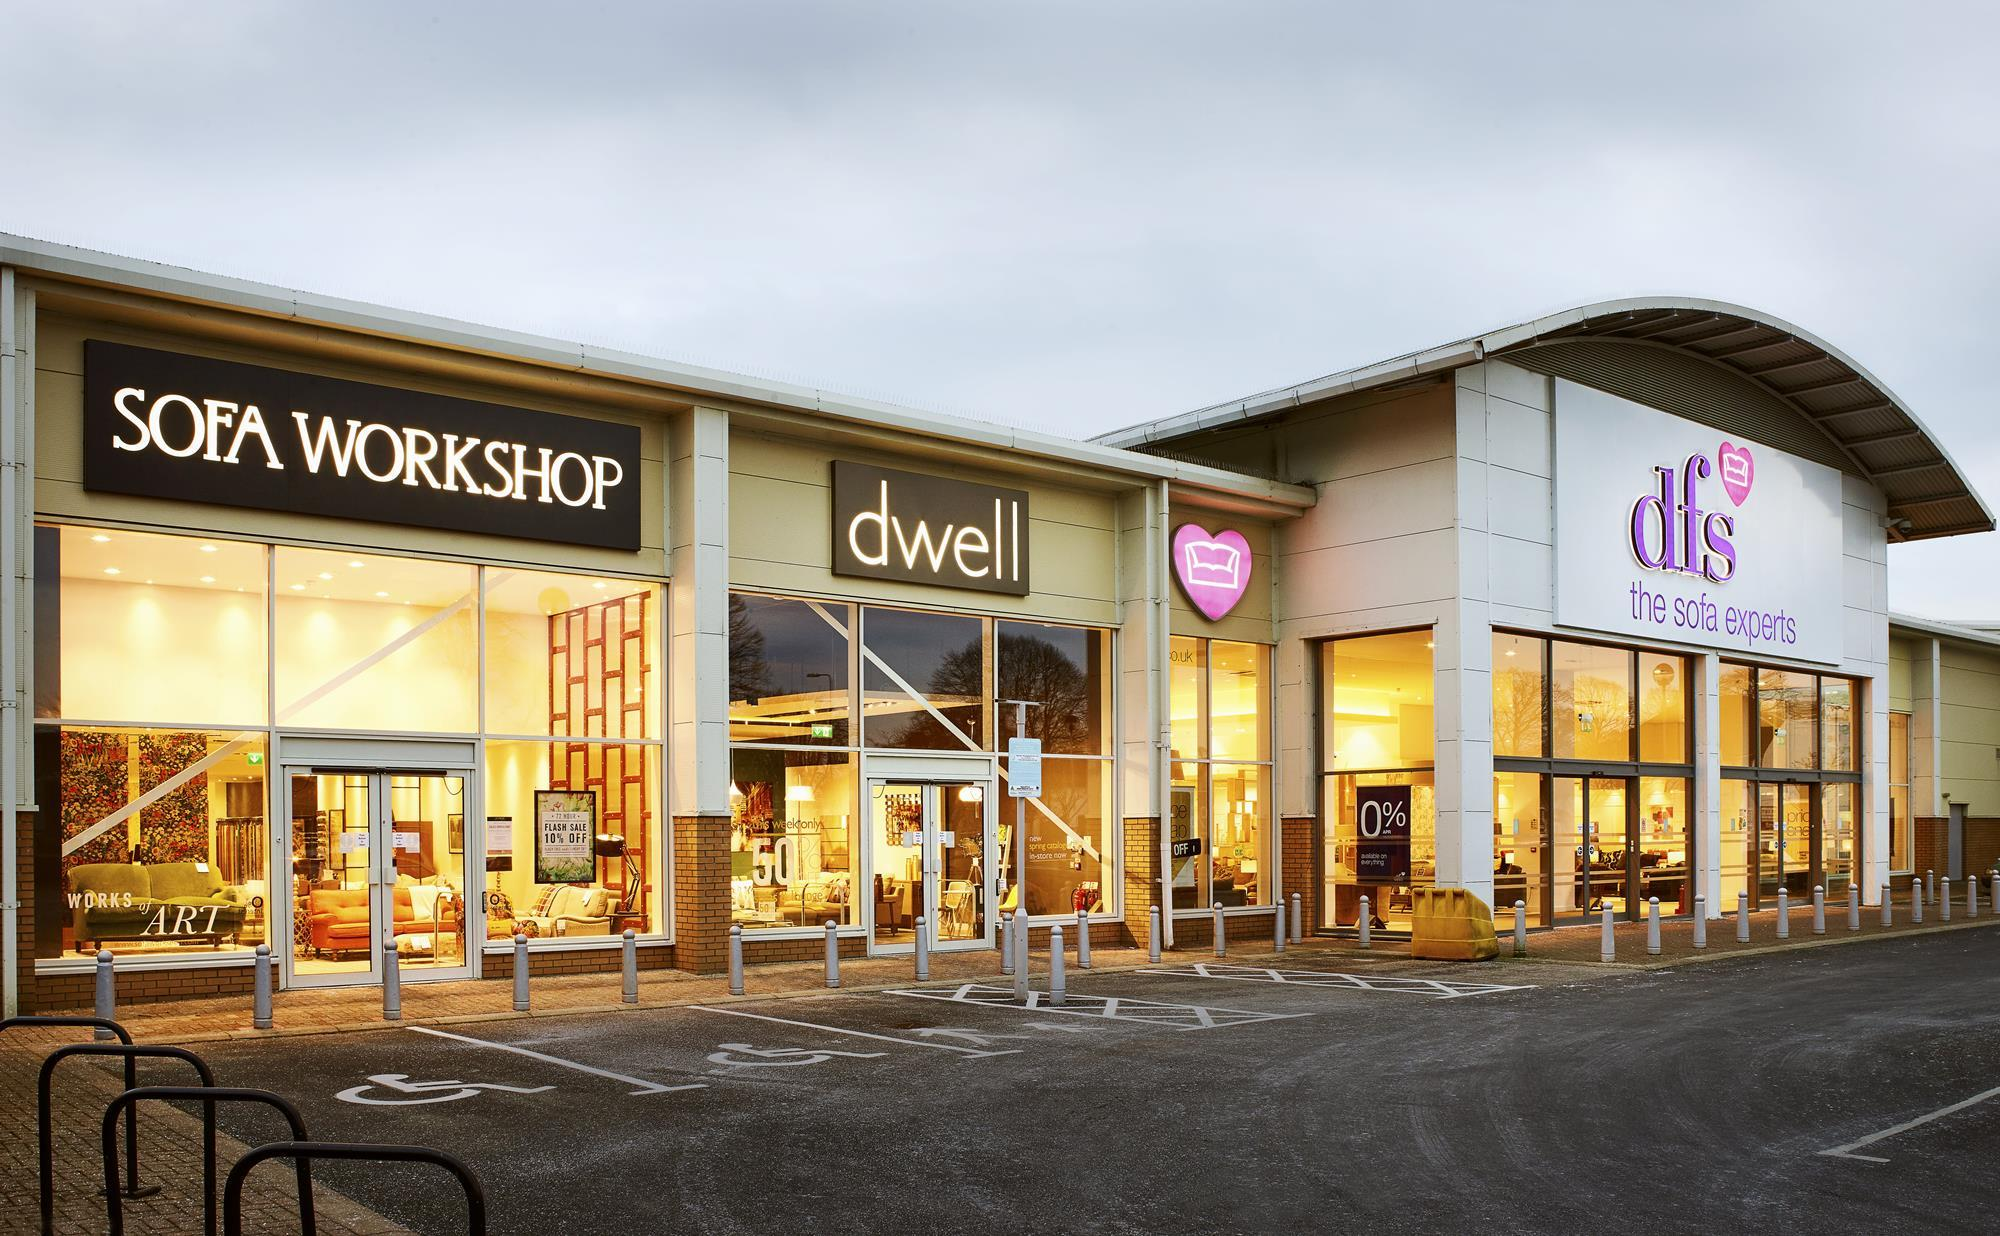 Dwells founder on why its sitting pretty at DFS Analysis